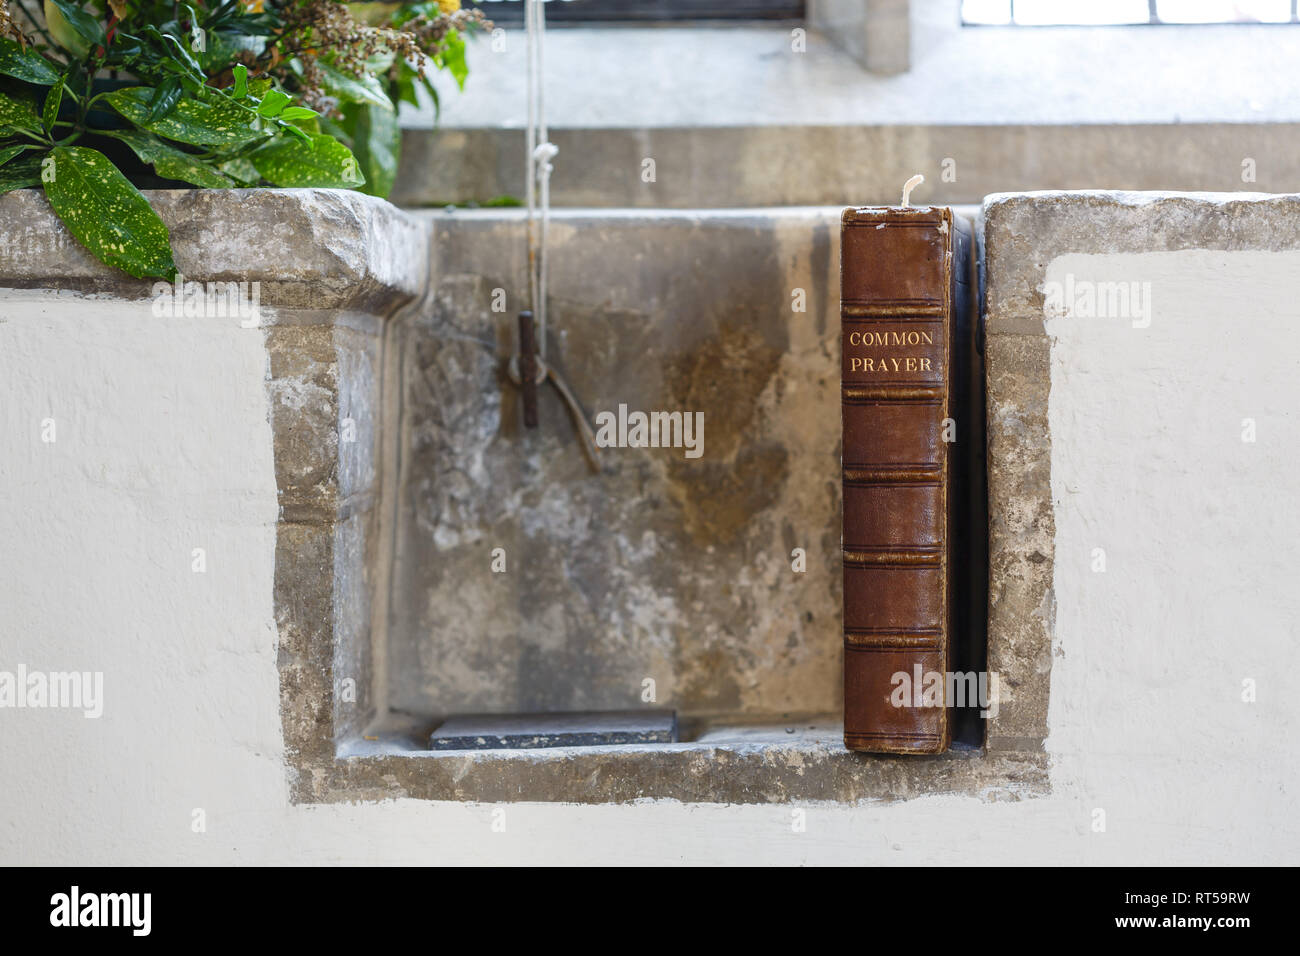 Detail of an ancient Church of England church with an old book of prayers. Depicts christianity and religion - Stock Image